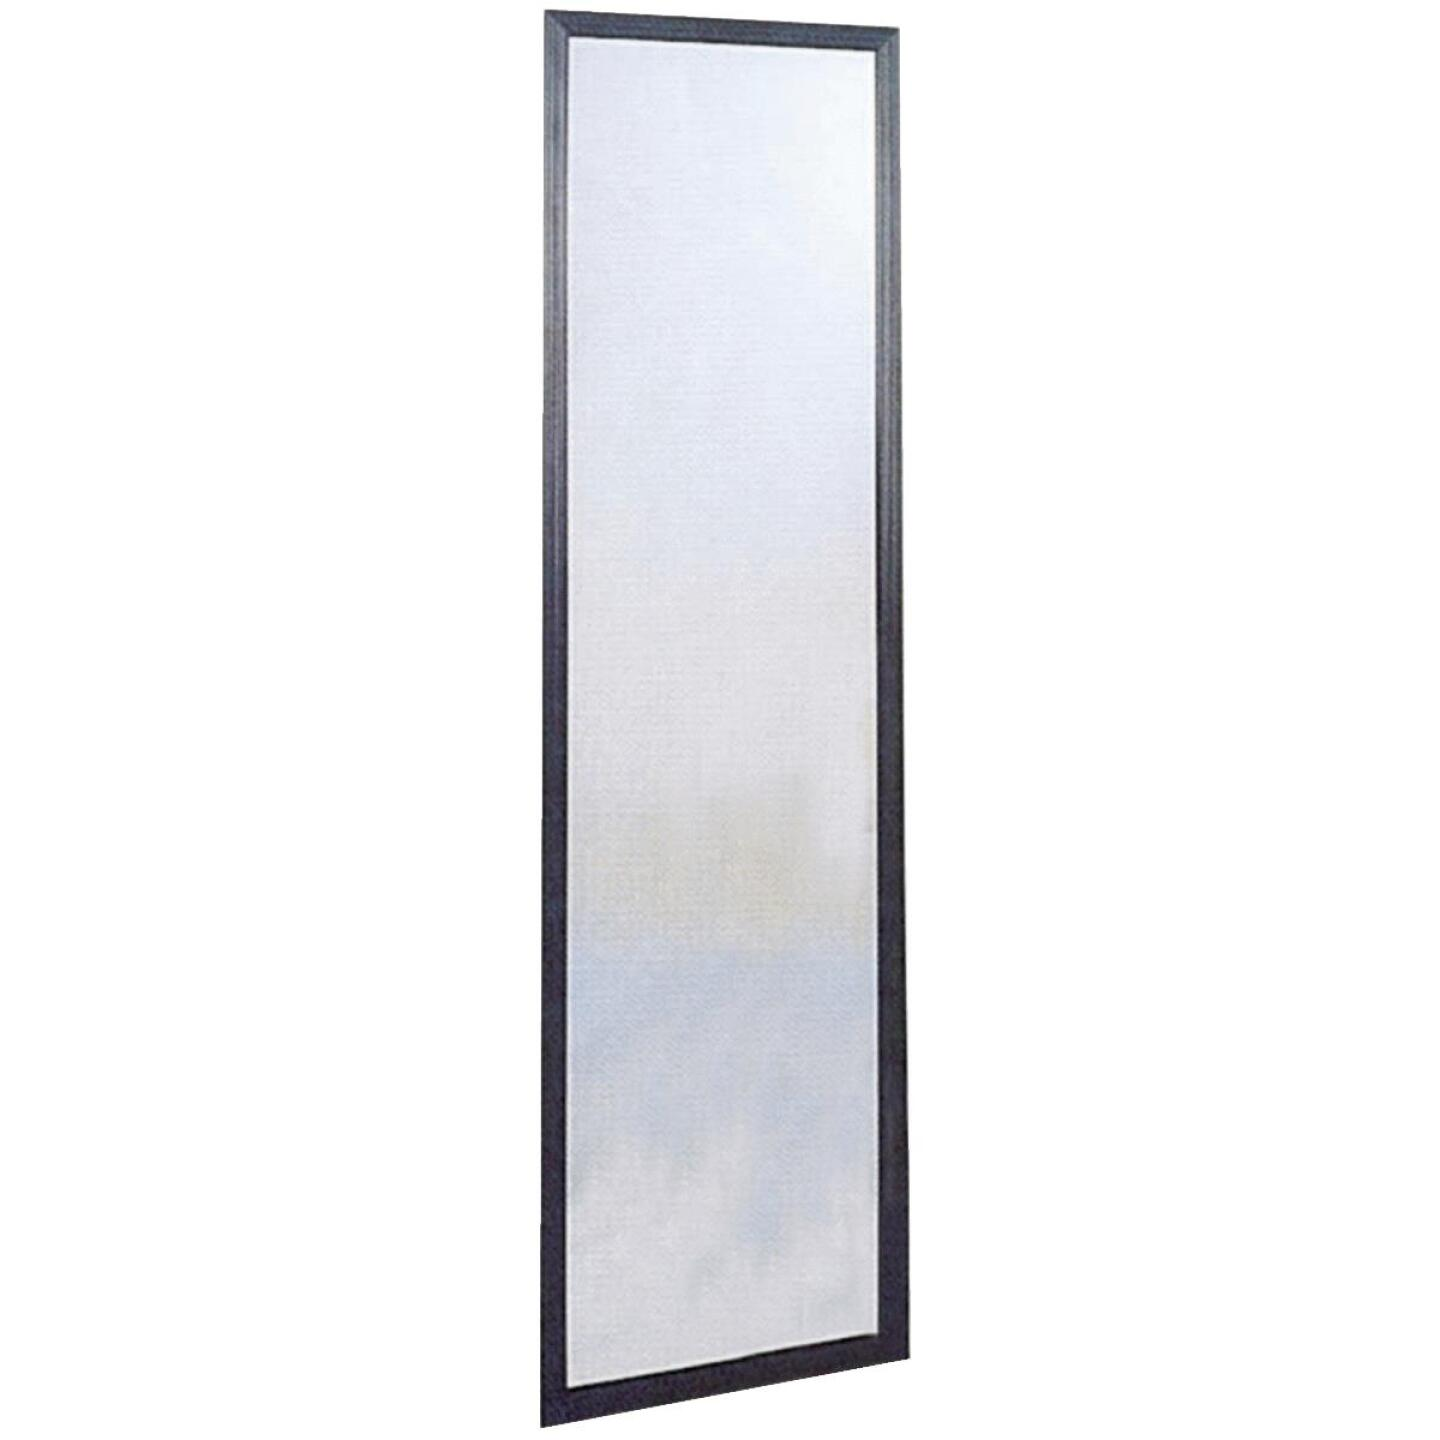 Home Decor Innovations Suave 13 In. x 49 In. Black Plastic Door Mirror Image 2